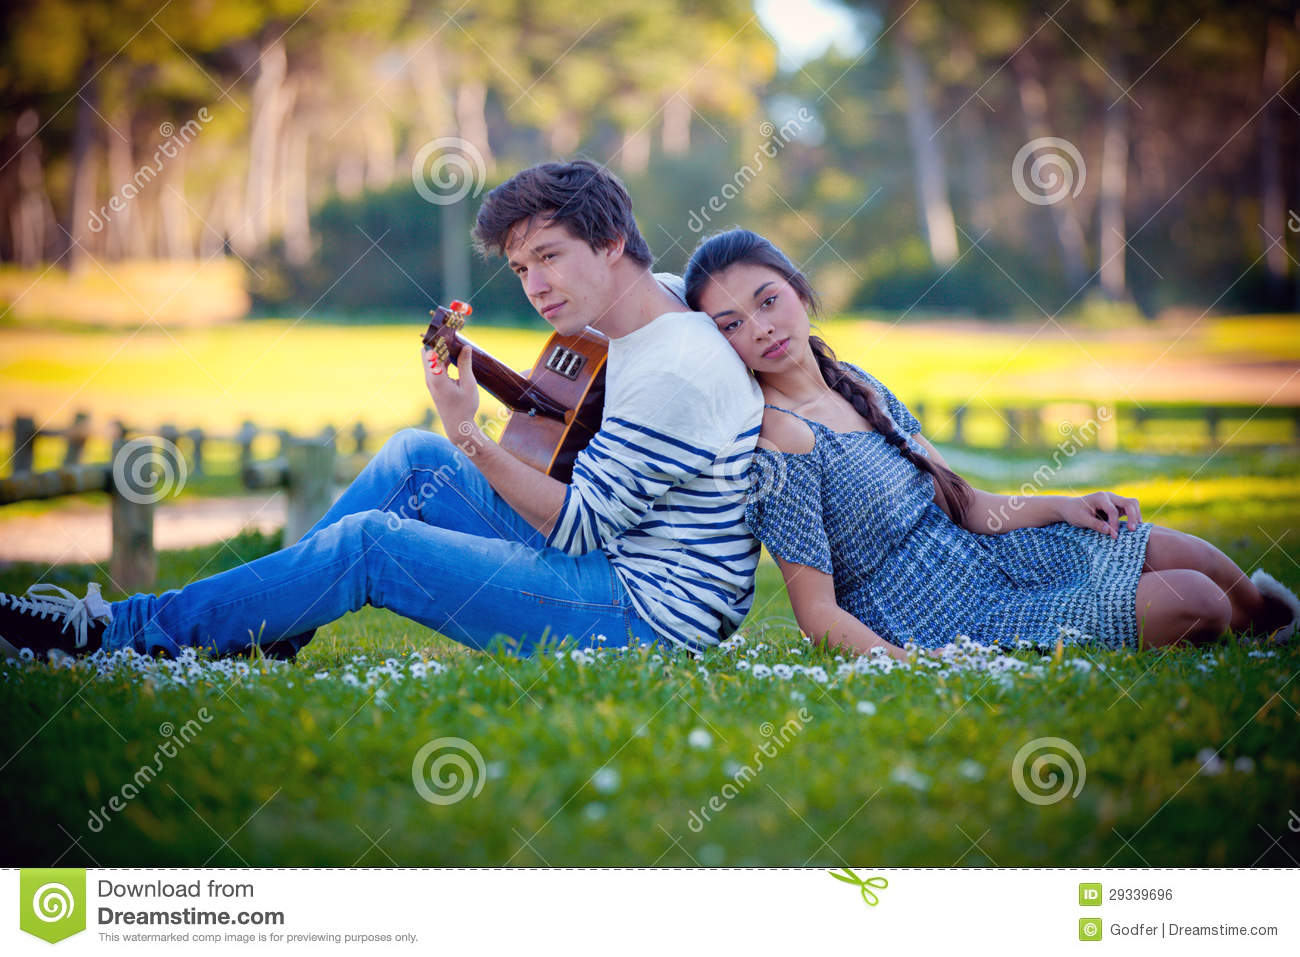 Romantic couple Playing Guitar Royalty Free Stock Image - Image: 29339696